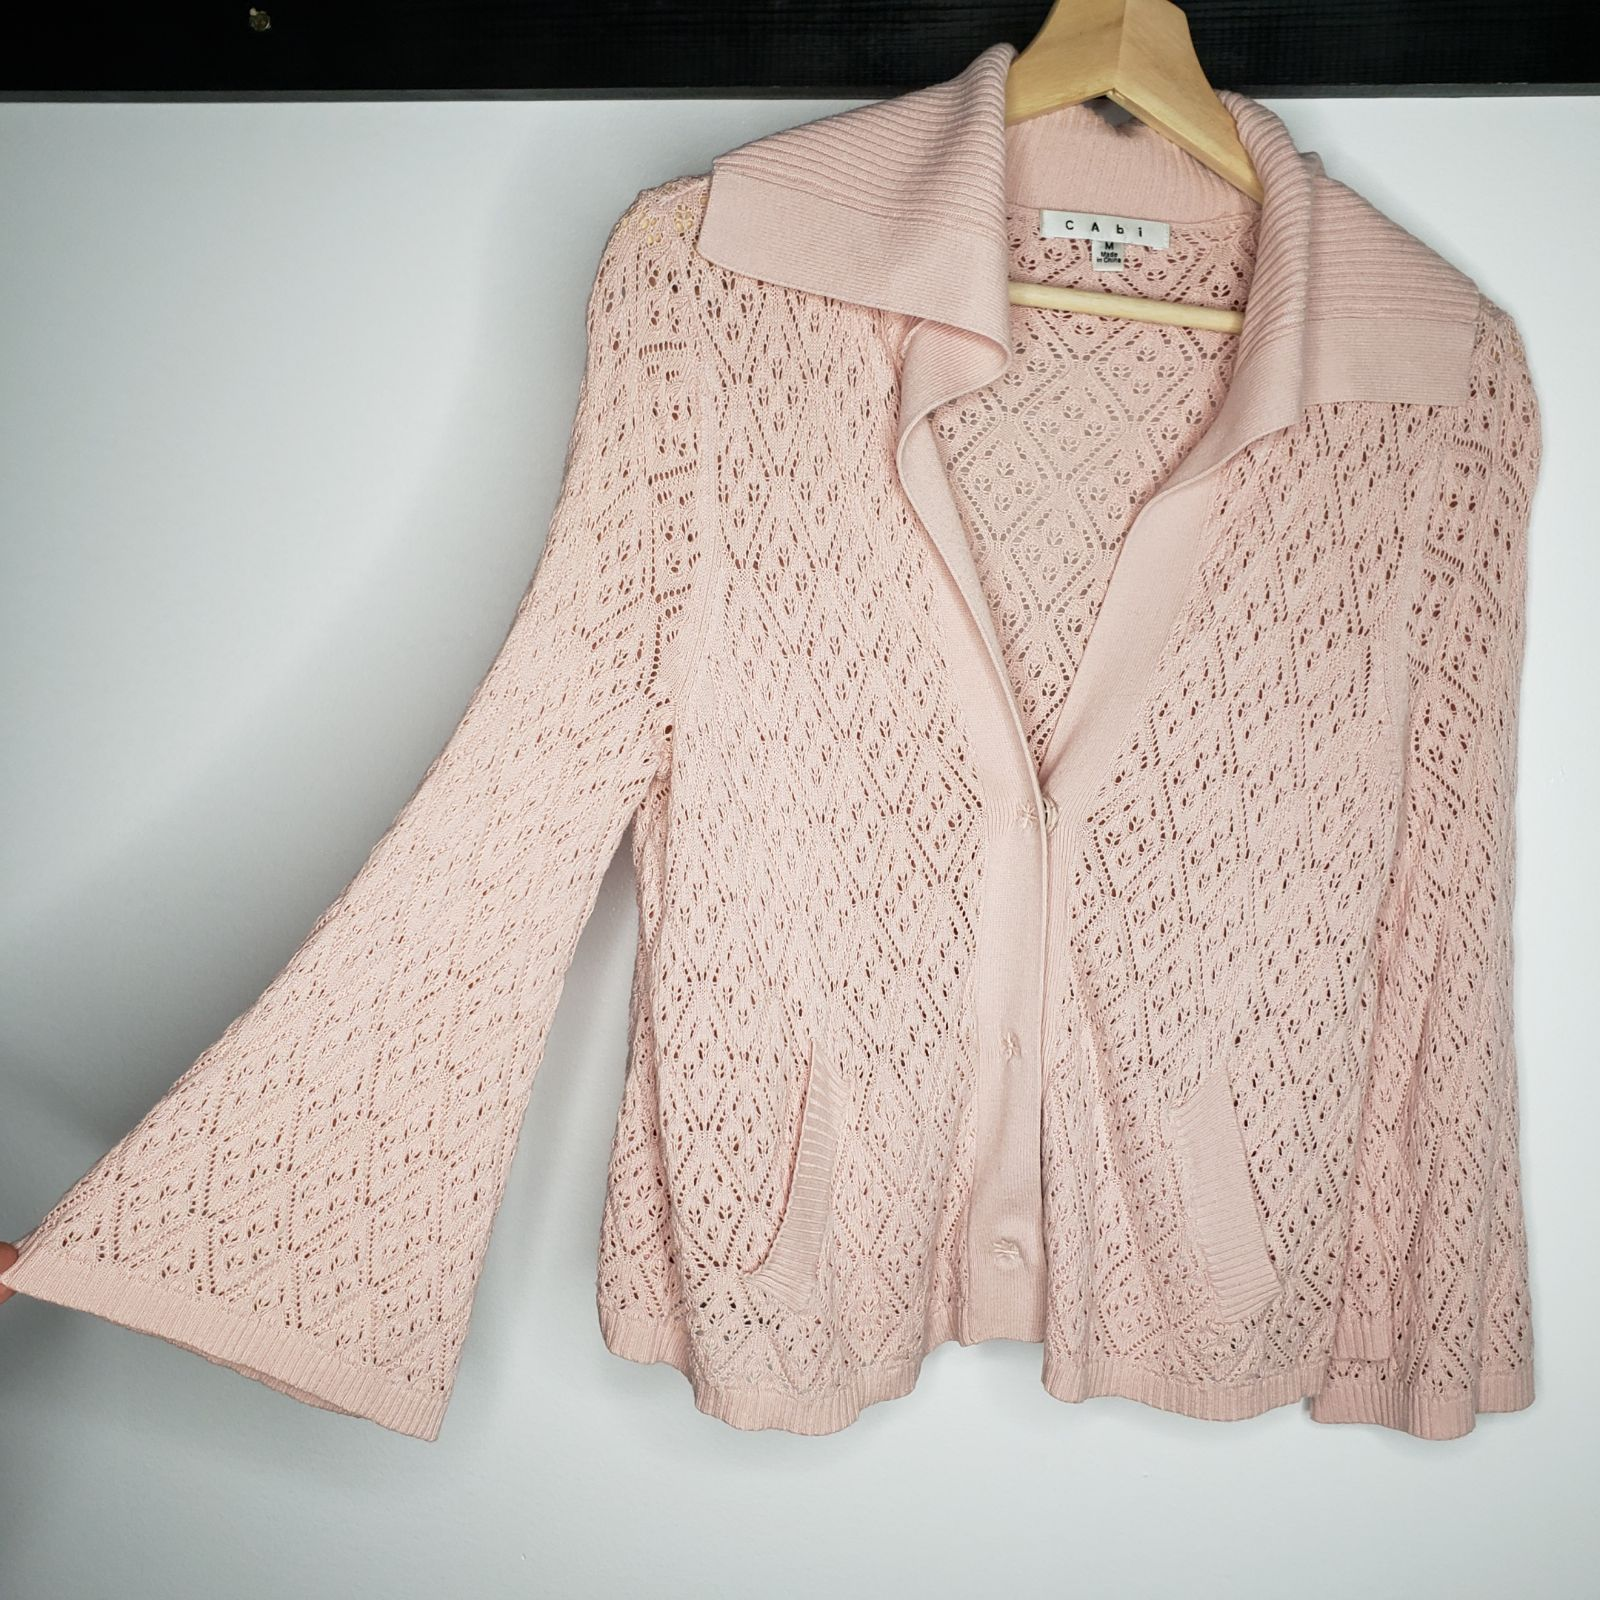 Cabi Open Knit Cardigan Size M Pink